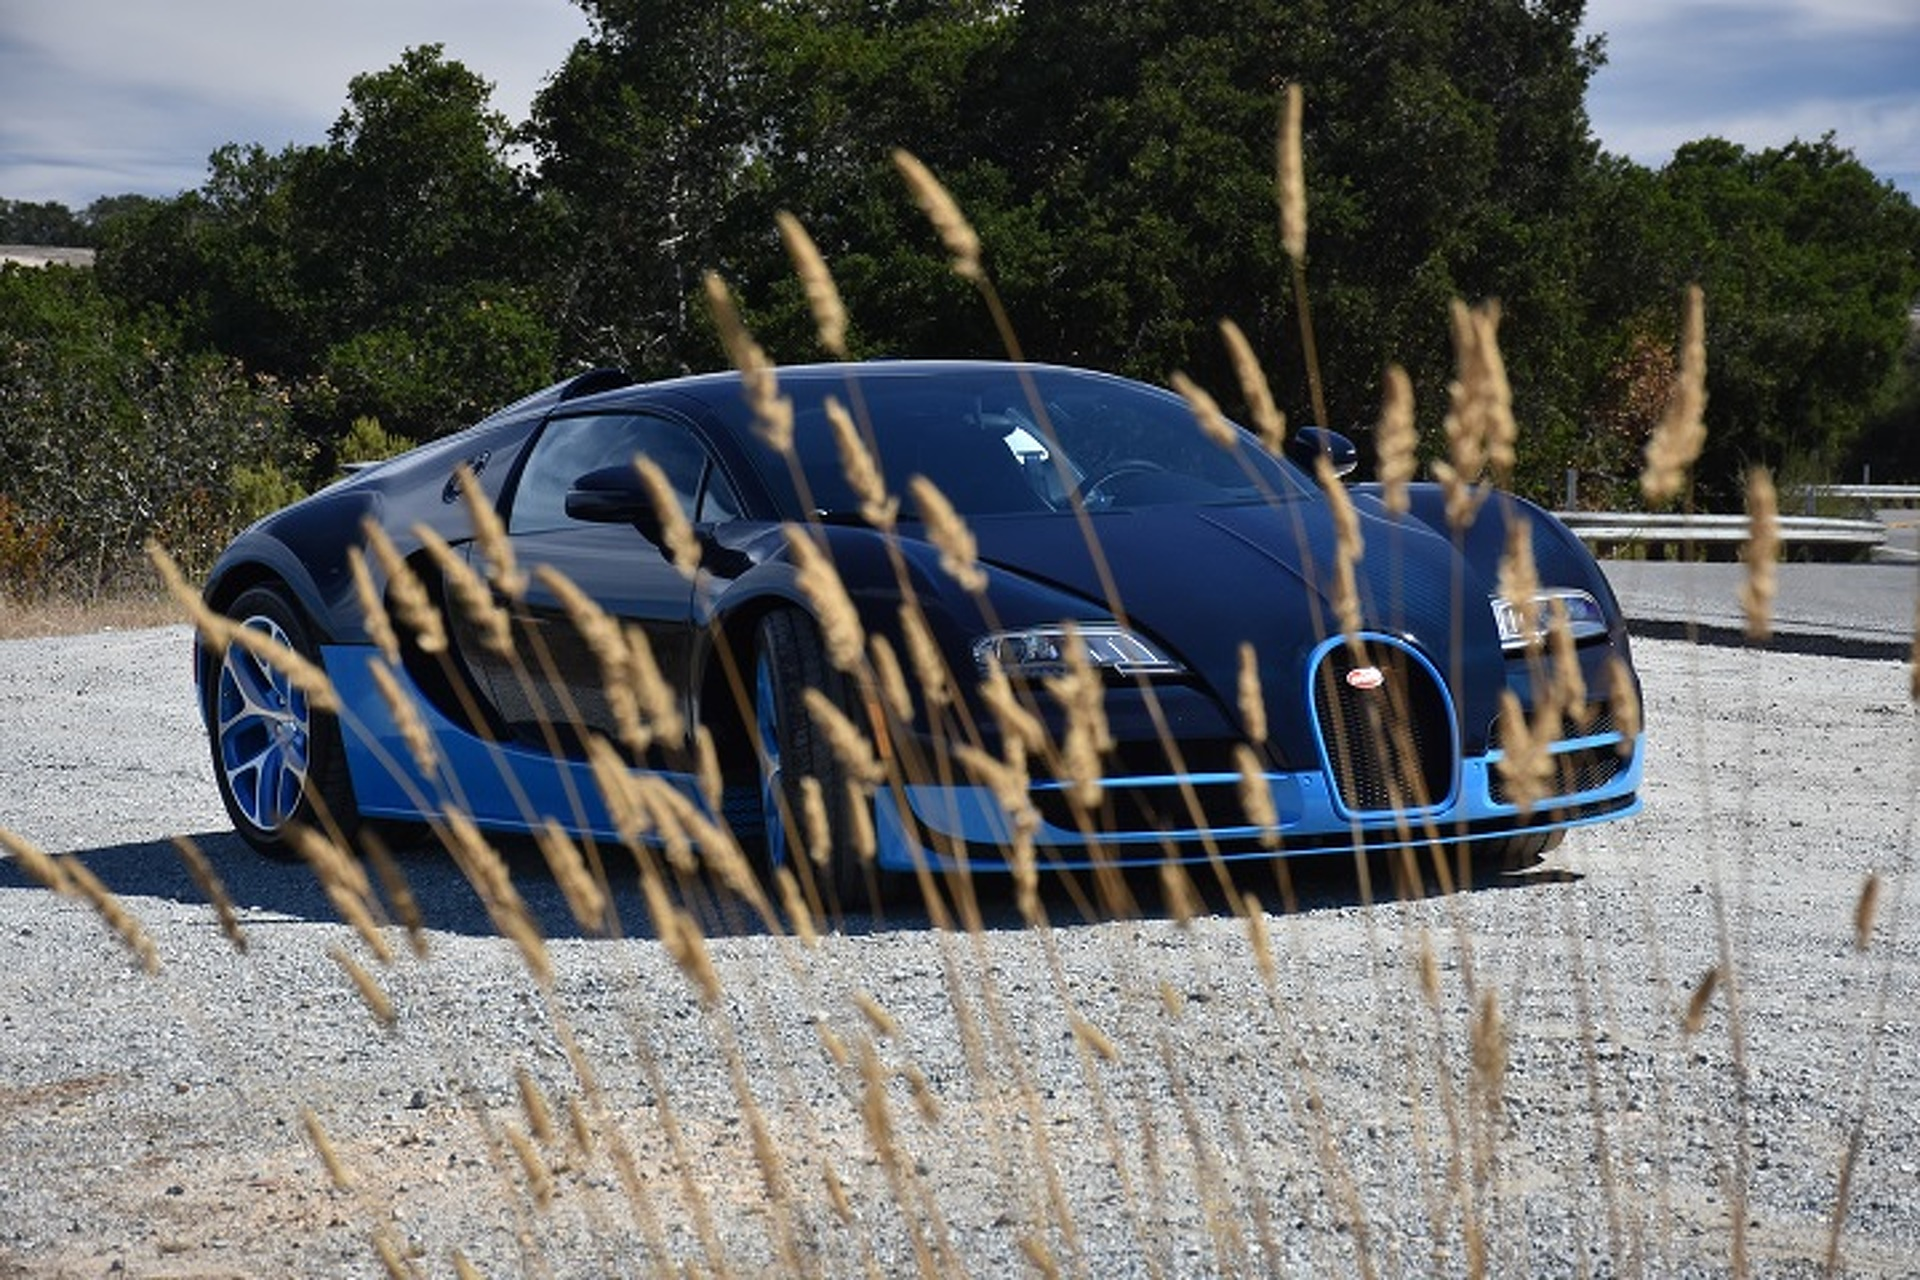 The Bugatti Veyron is the Closest You'll Get to a Fighter Jet: First Drive